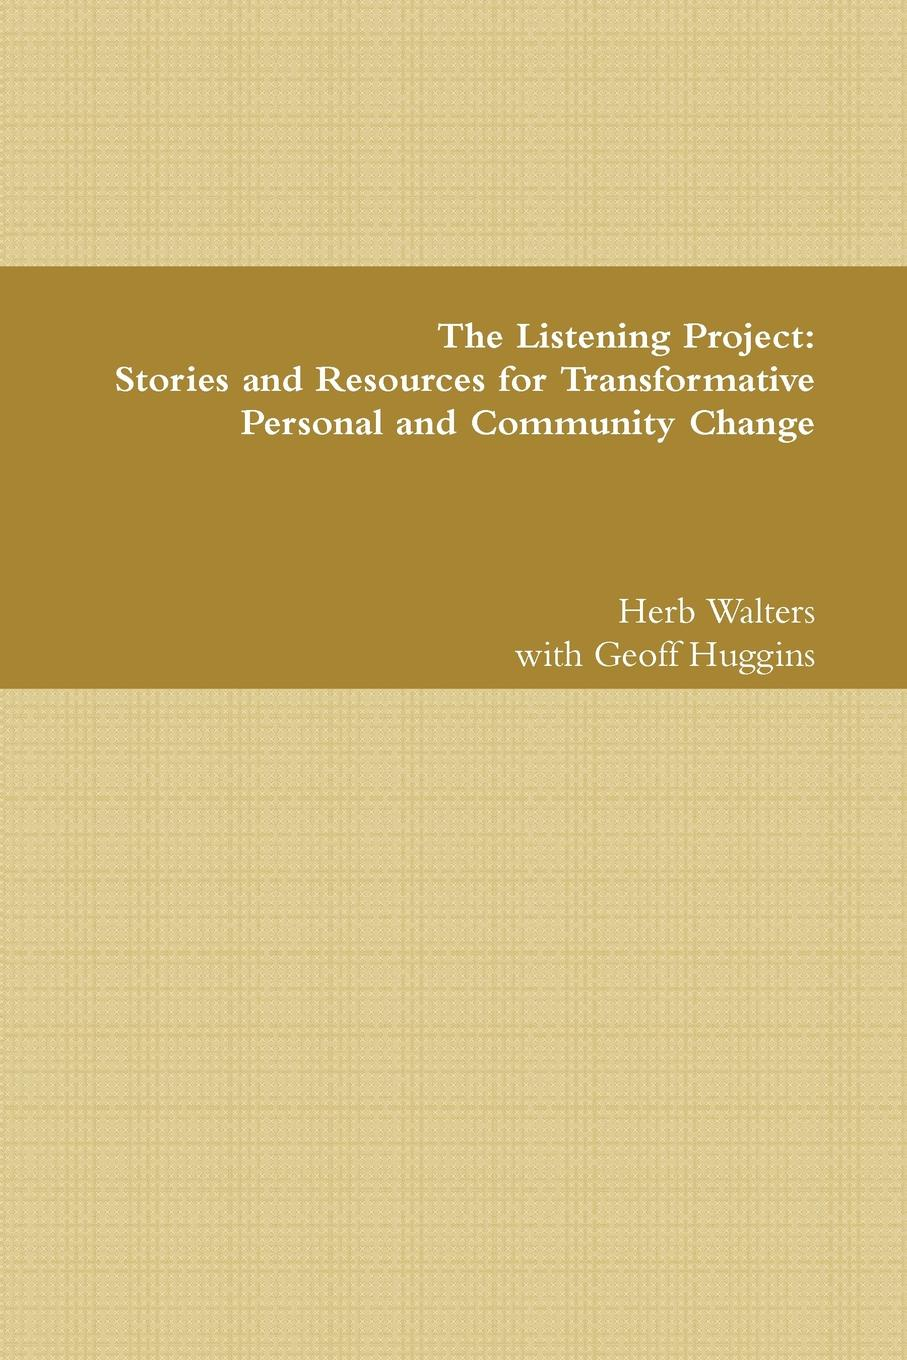 Herb Walters, Geoff Huggins The Listening Project. Stories and Resources for Transformative Personal and Community Change john piper breakthrough to creative change in communities of faith